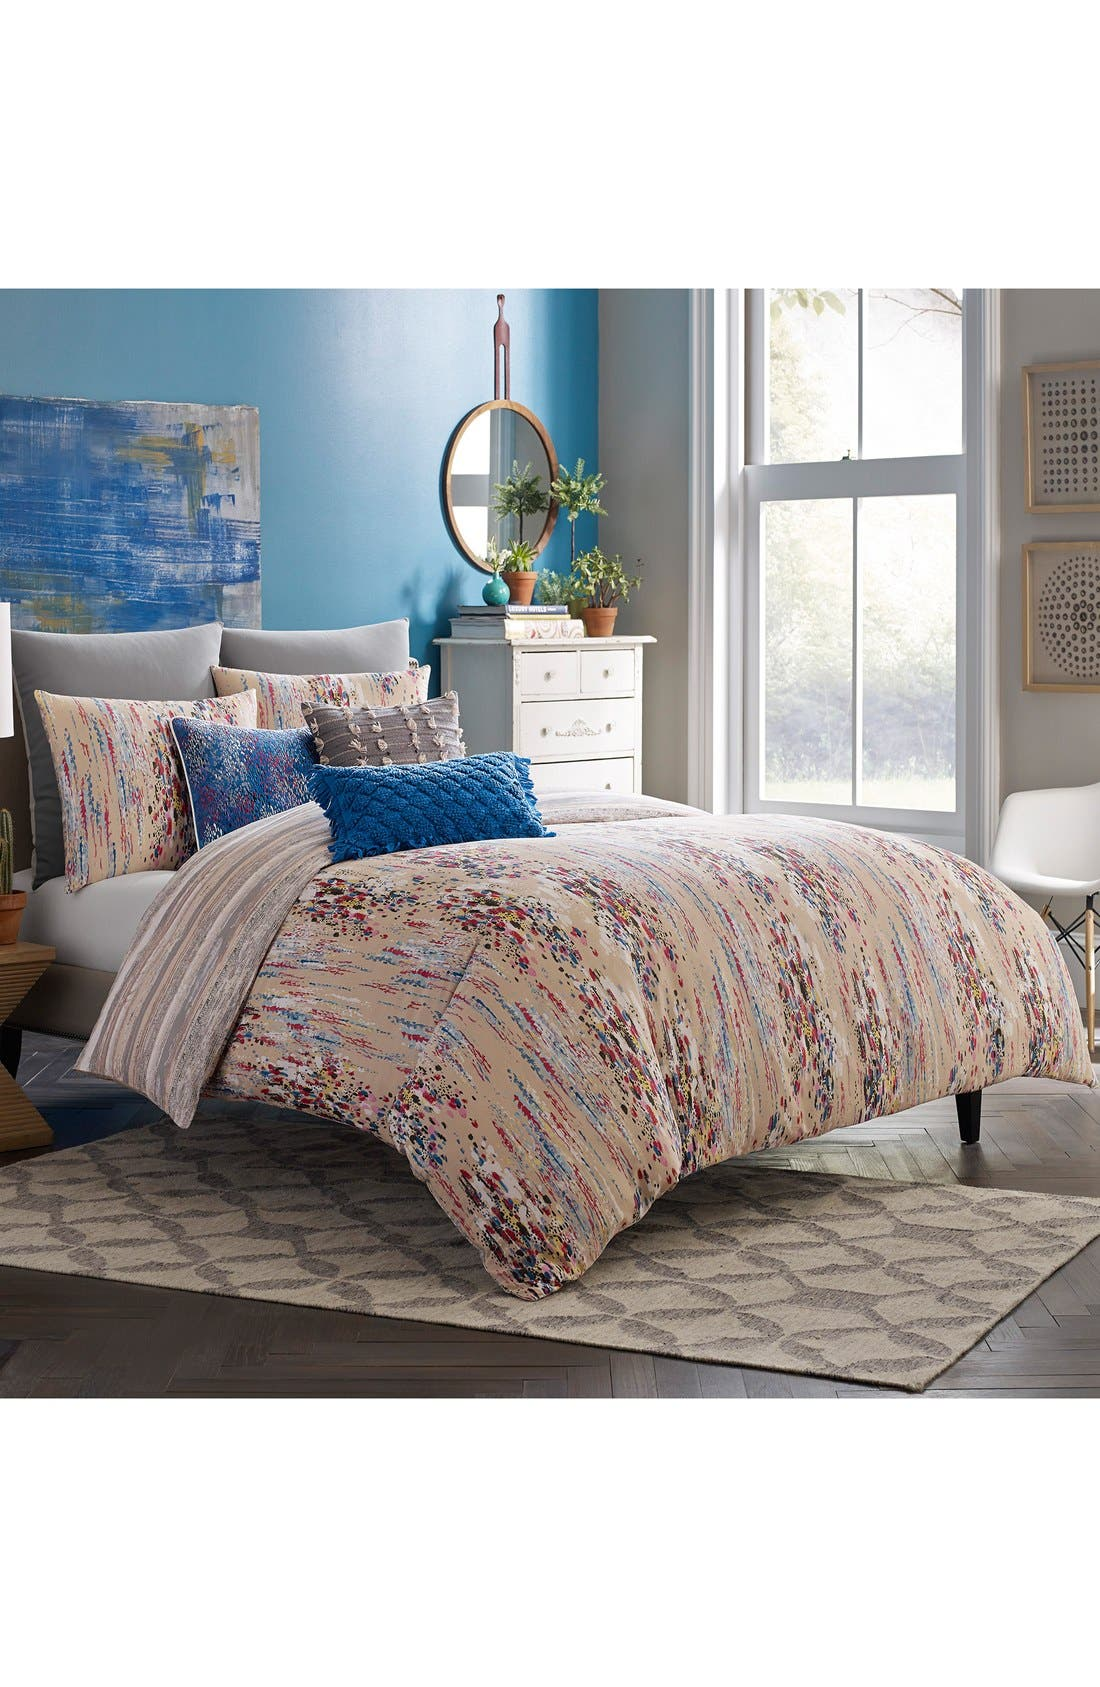 Blissliving Home Bellas Artes Duvet Cover & Sham Set